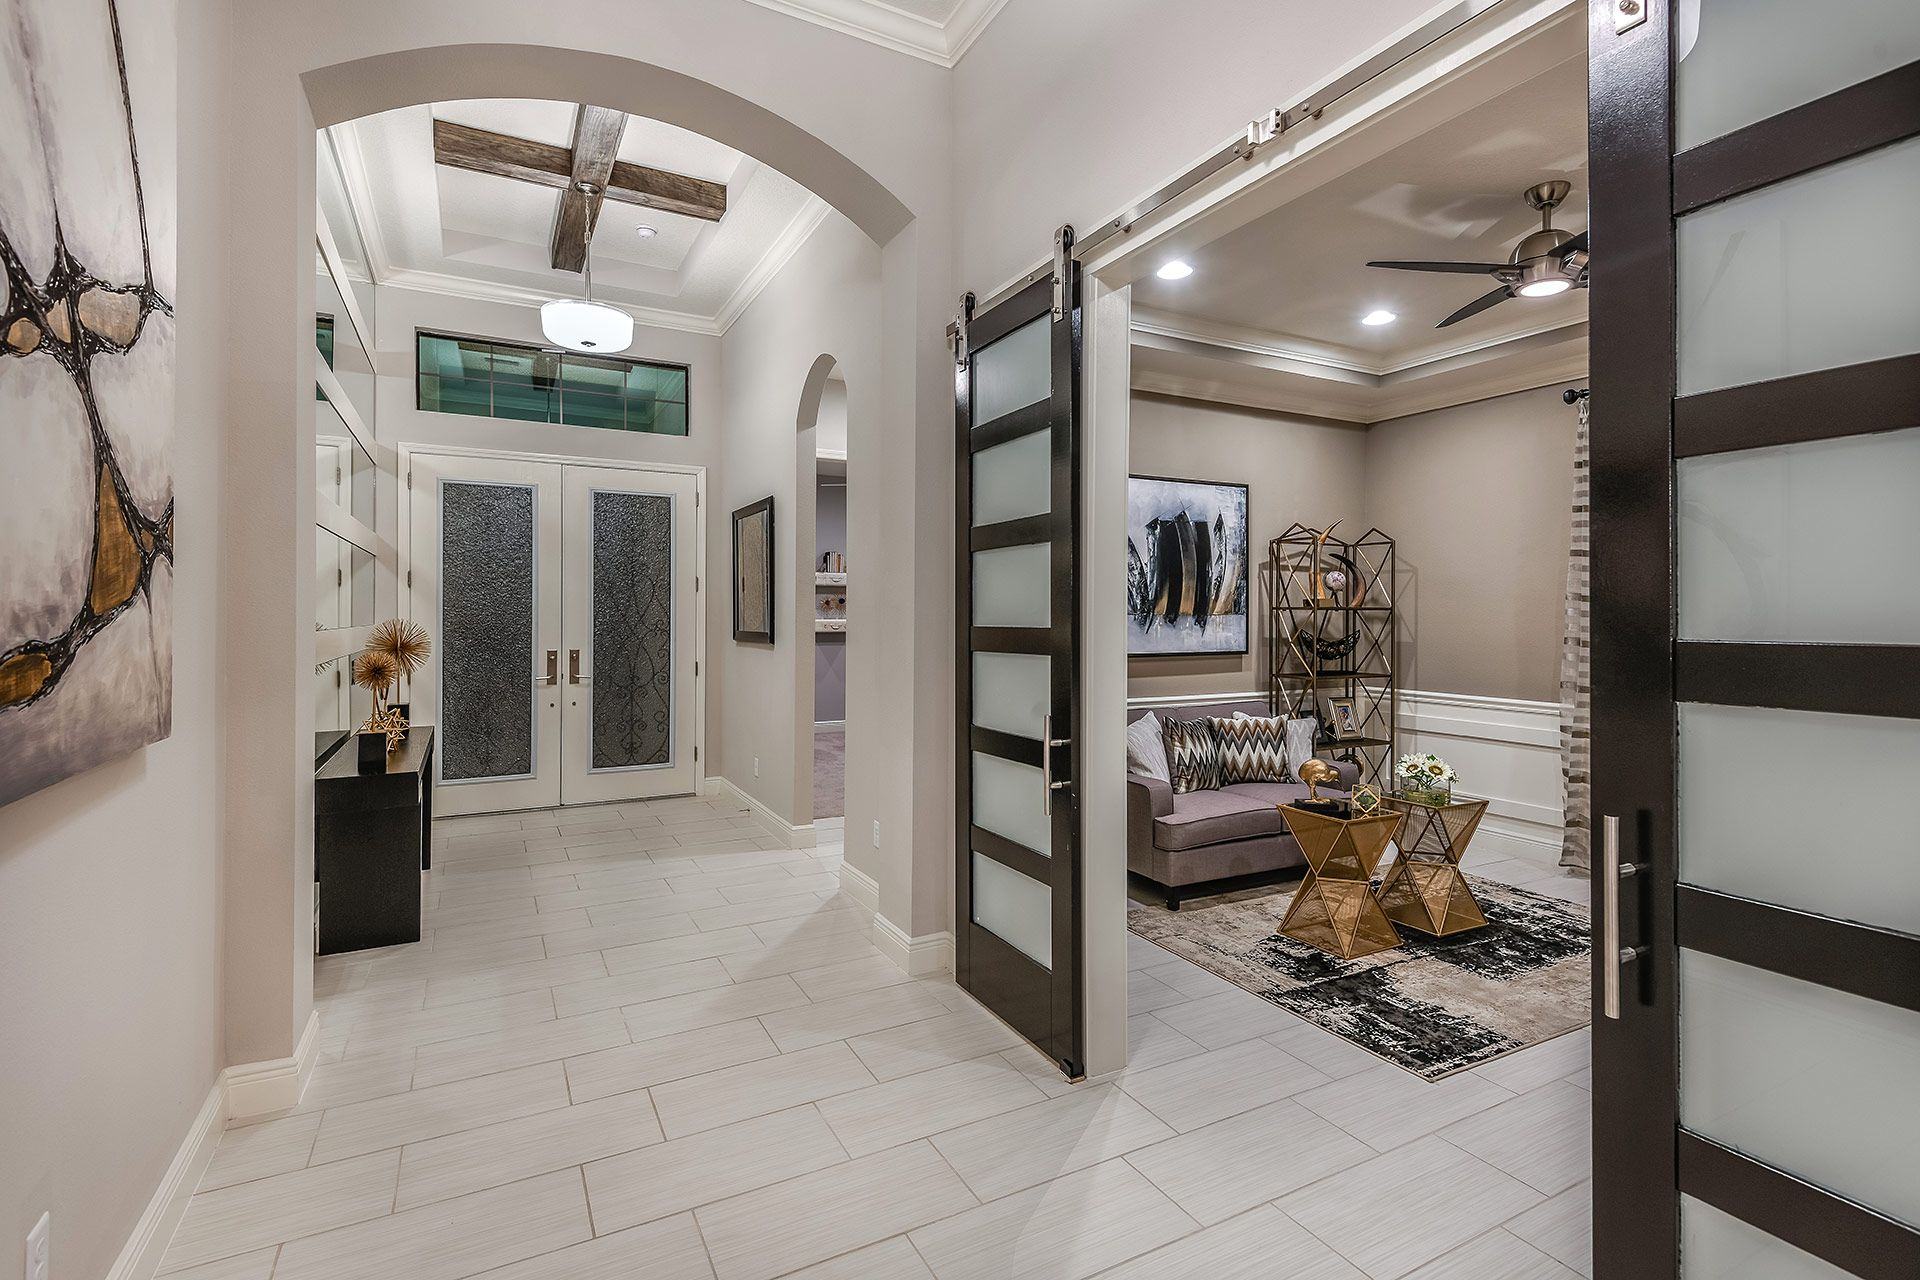 Living Area featured in the Biscayne II By Homes by WestBay in Tampa-St. Petersburg, FL